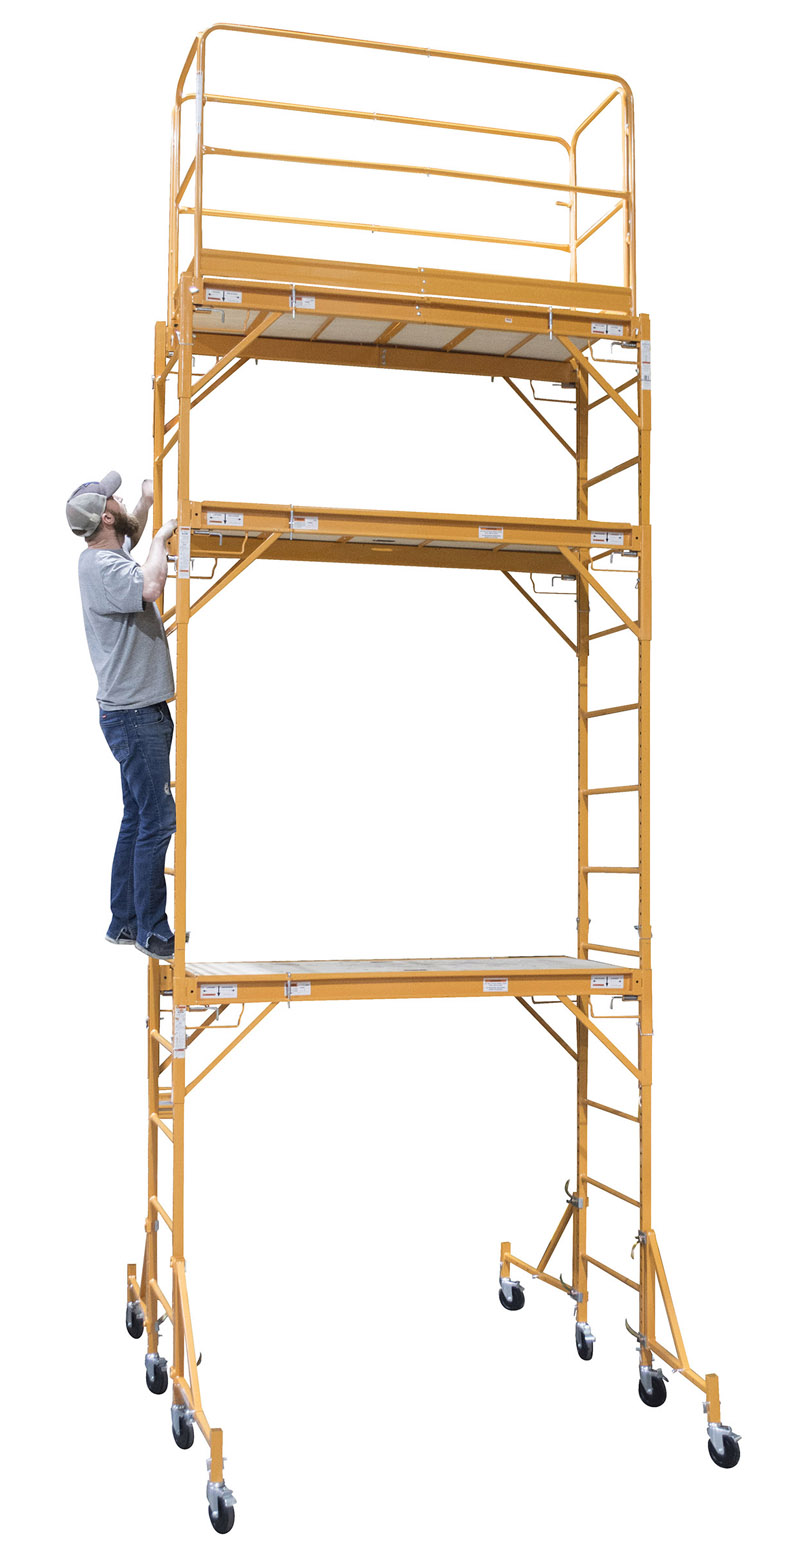 2.5 Level Rolling Interior Scaffold Tower